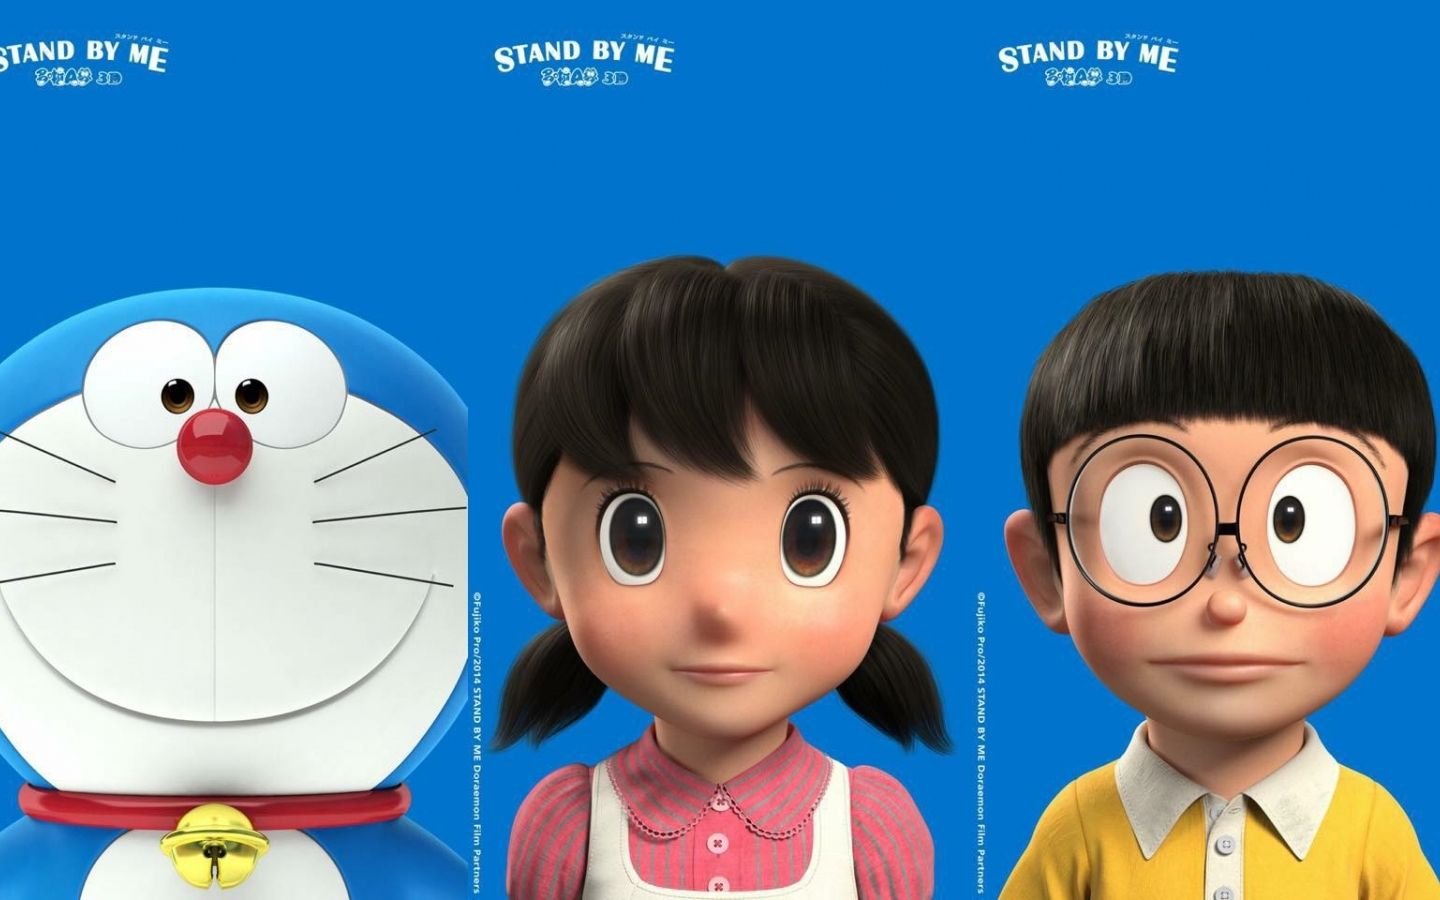 Stand By Me Doraemon Wallpapers Top Free Stand By Me Doraemon Backgrounds Wallpaperaccess